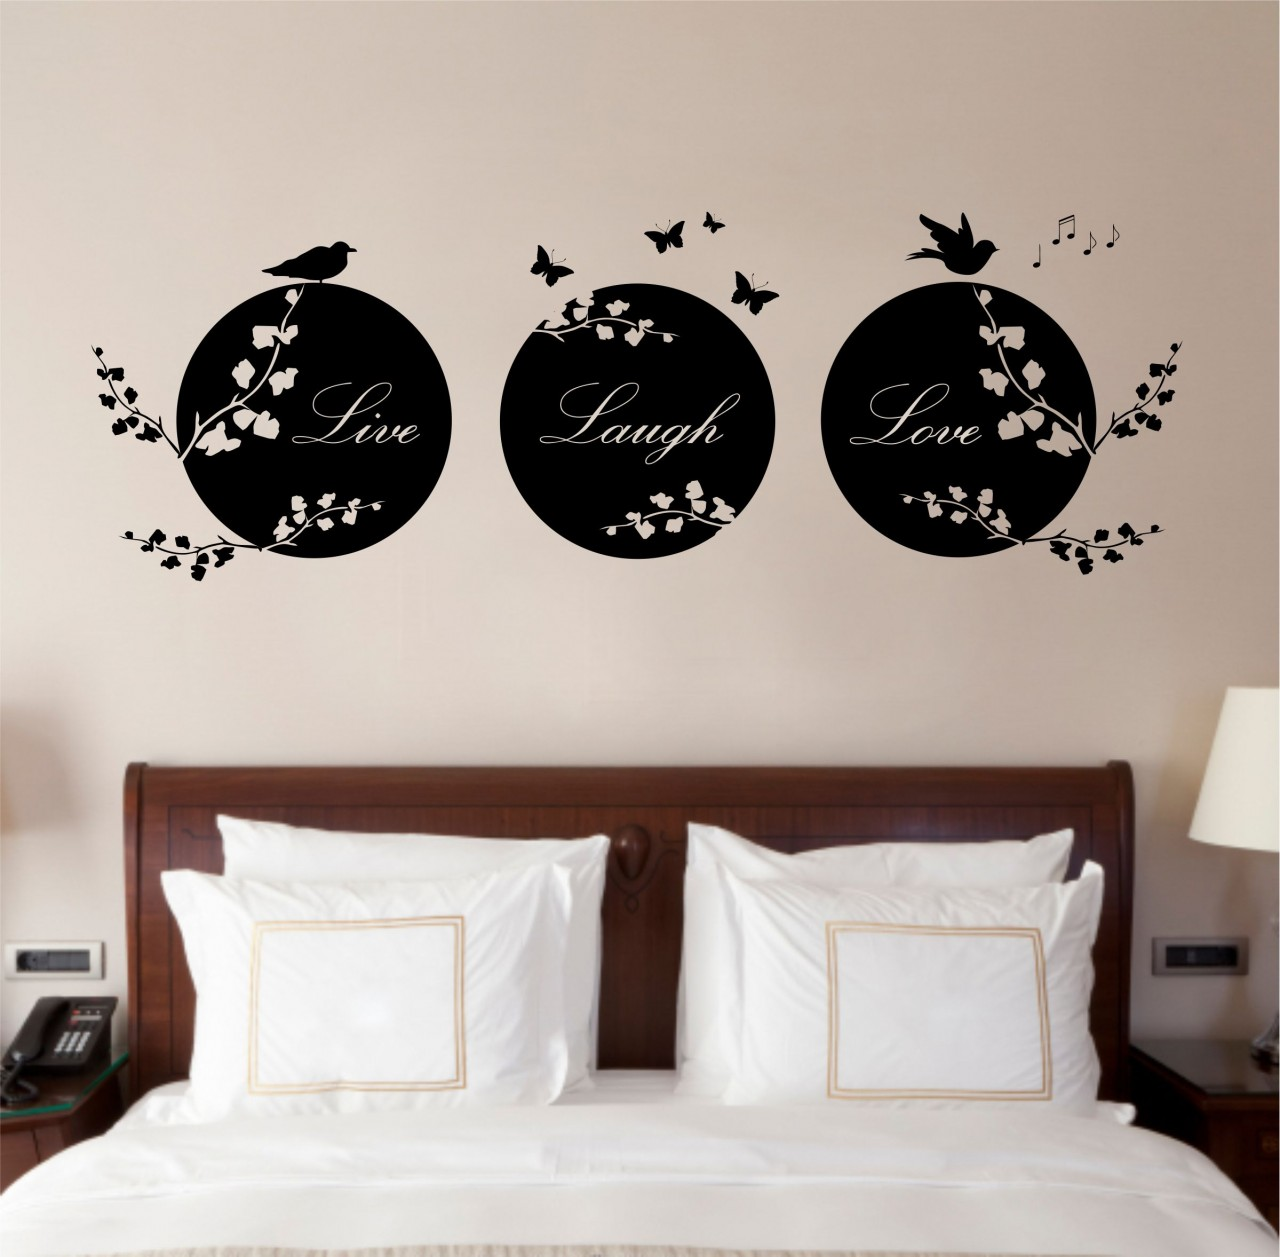 5 types of wall art stickers to beautify the room Bedroom wall art